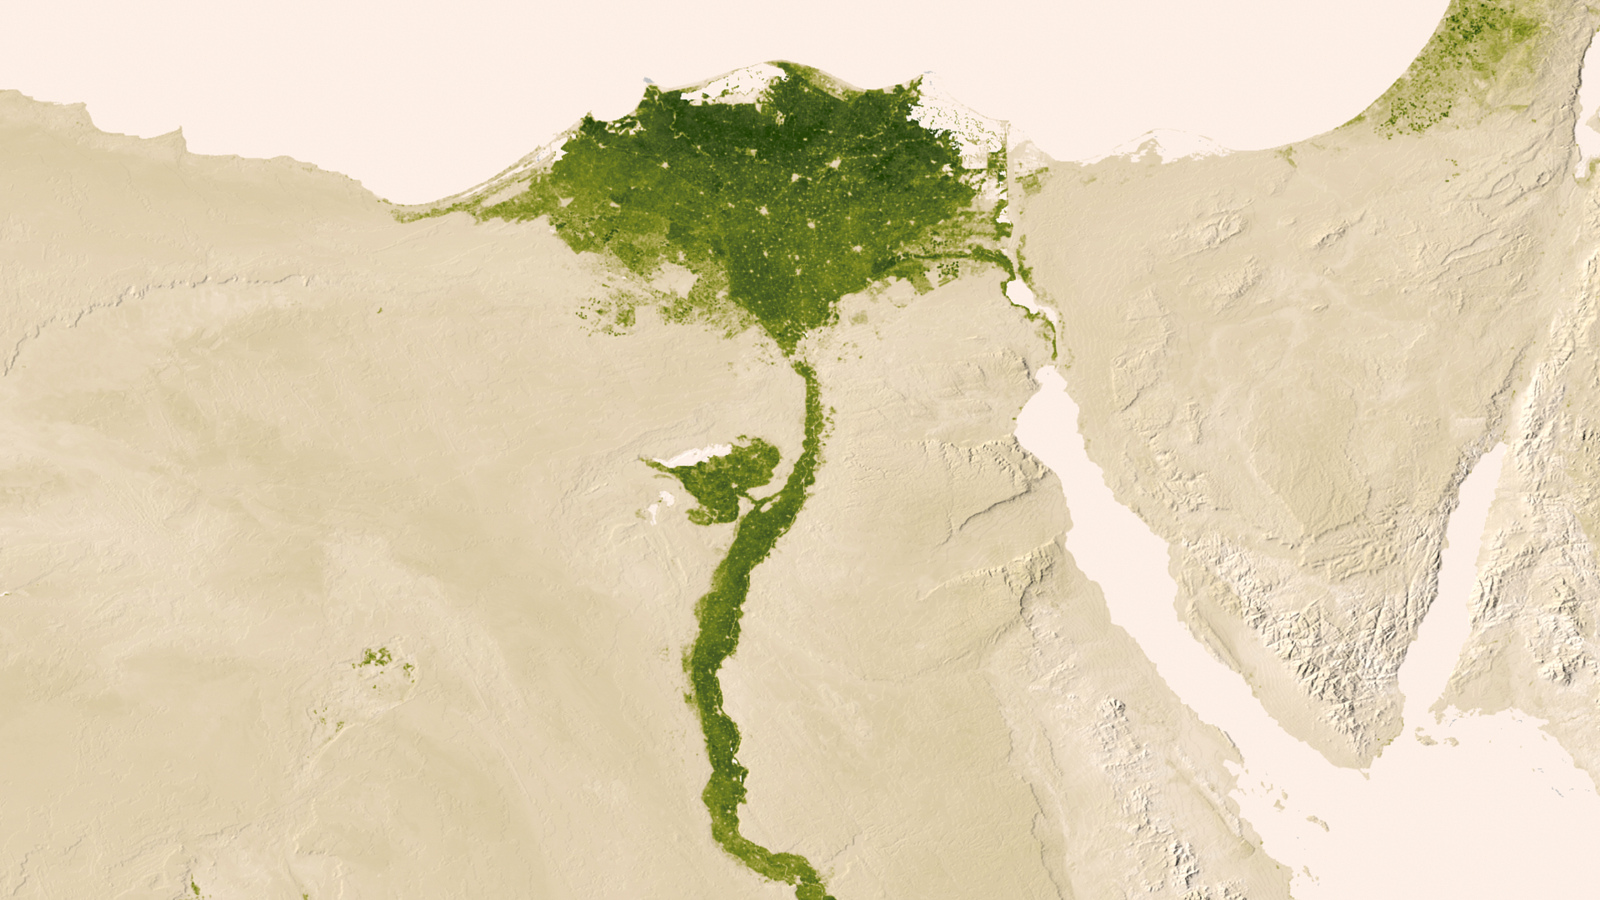 Herbal Earth: Nile Delta